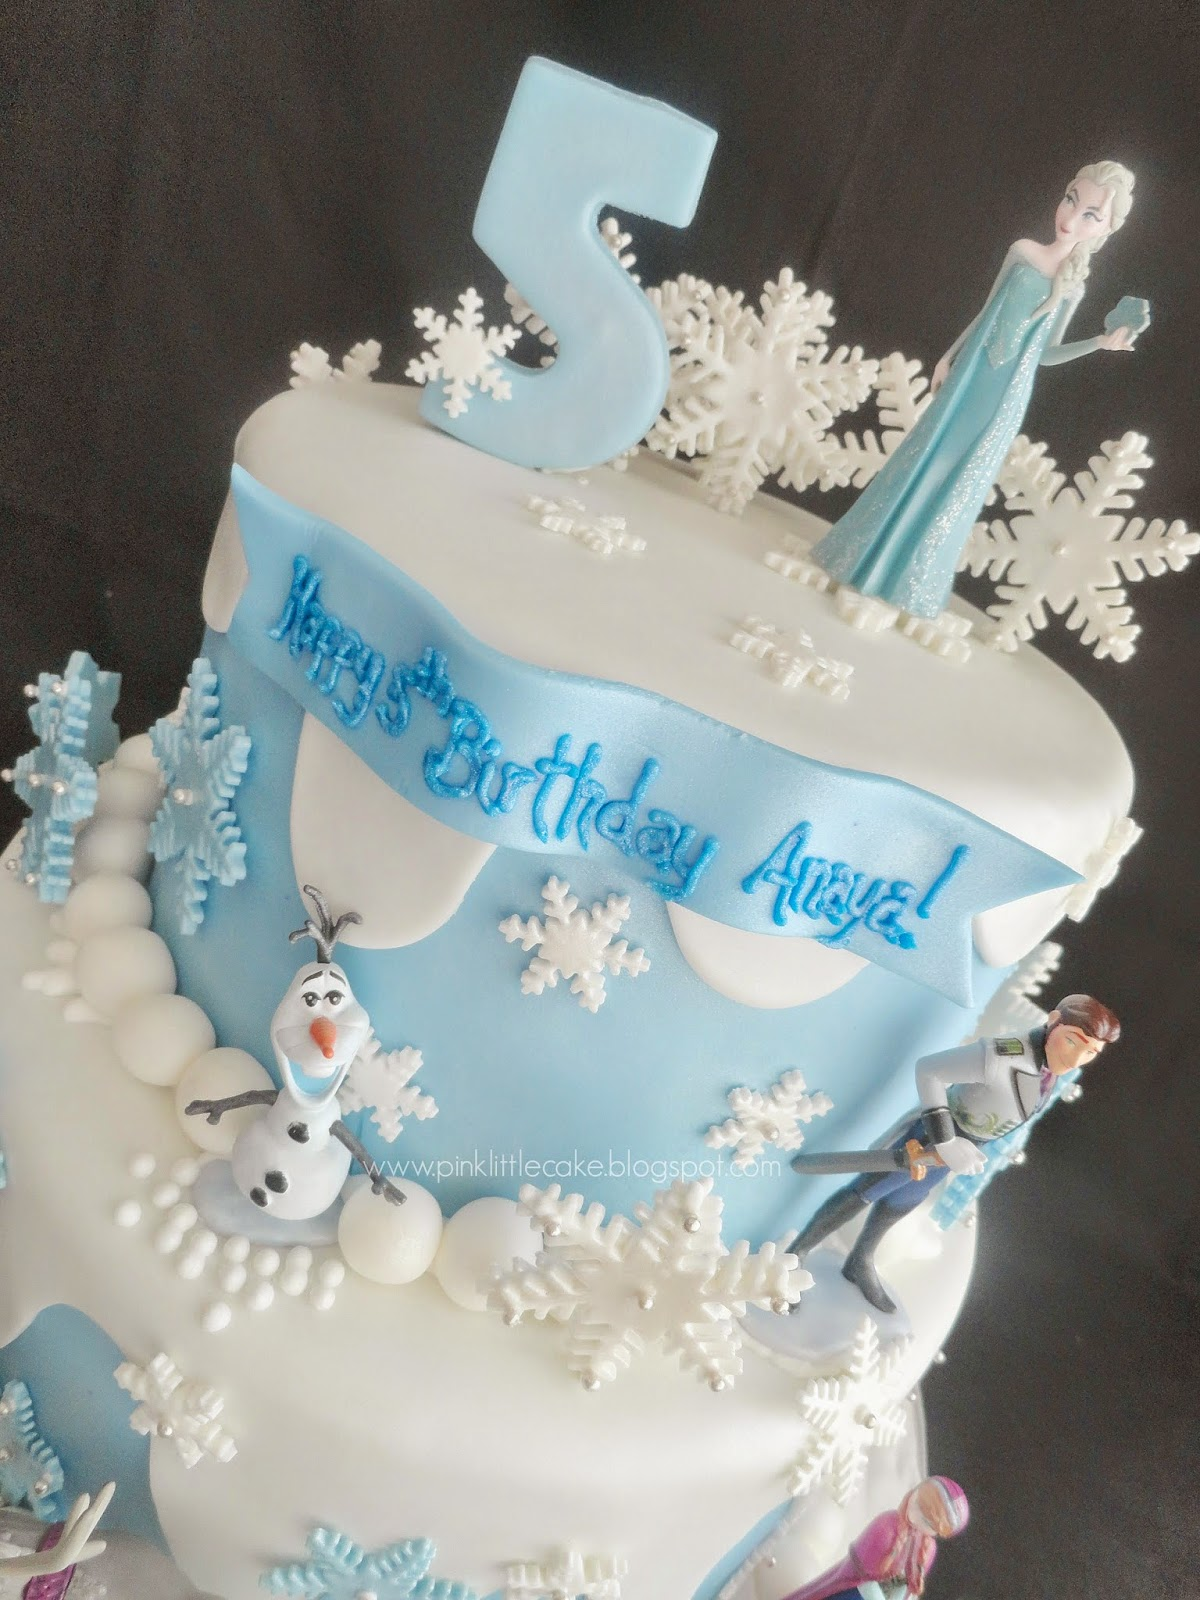 My Pink Little Cake Frozen Theme Birthday Cake